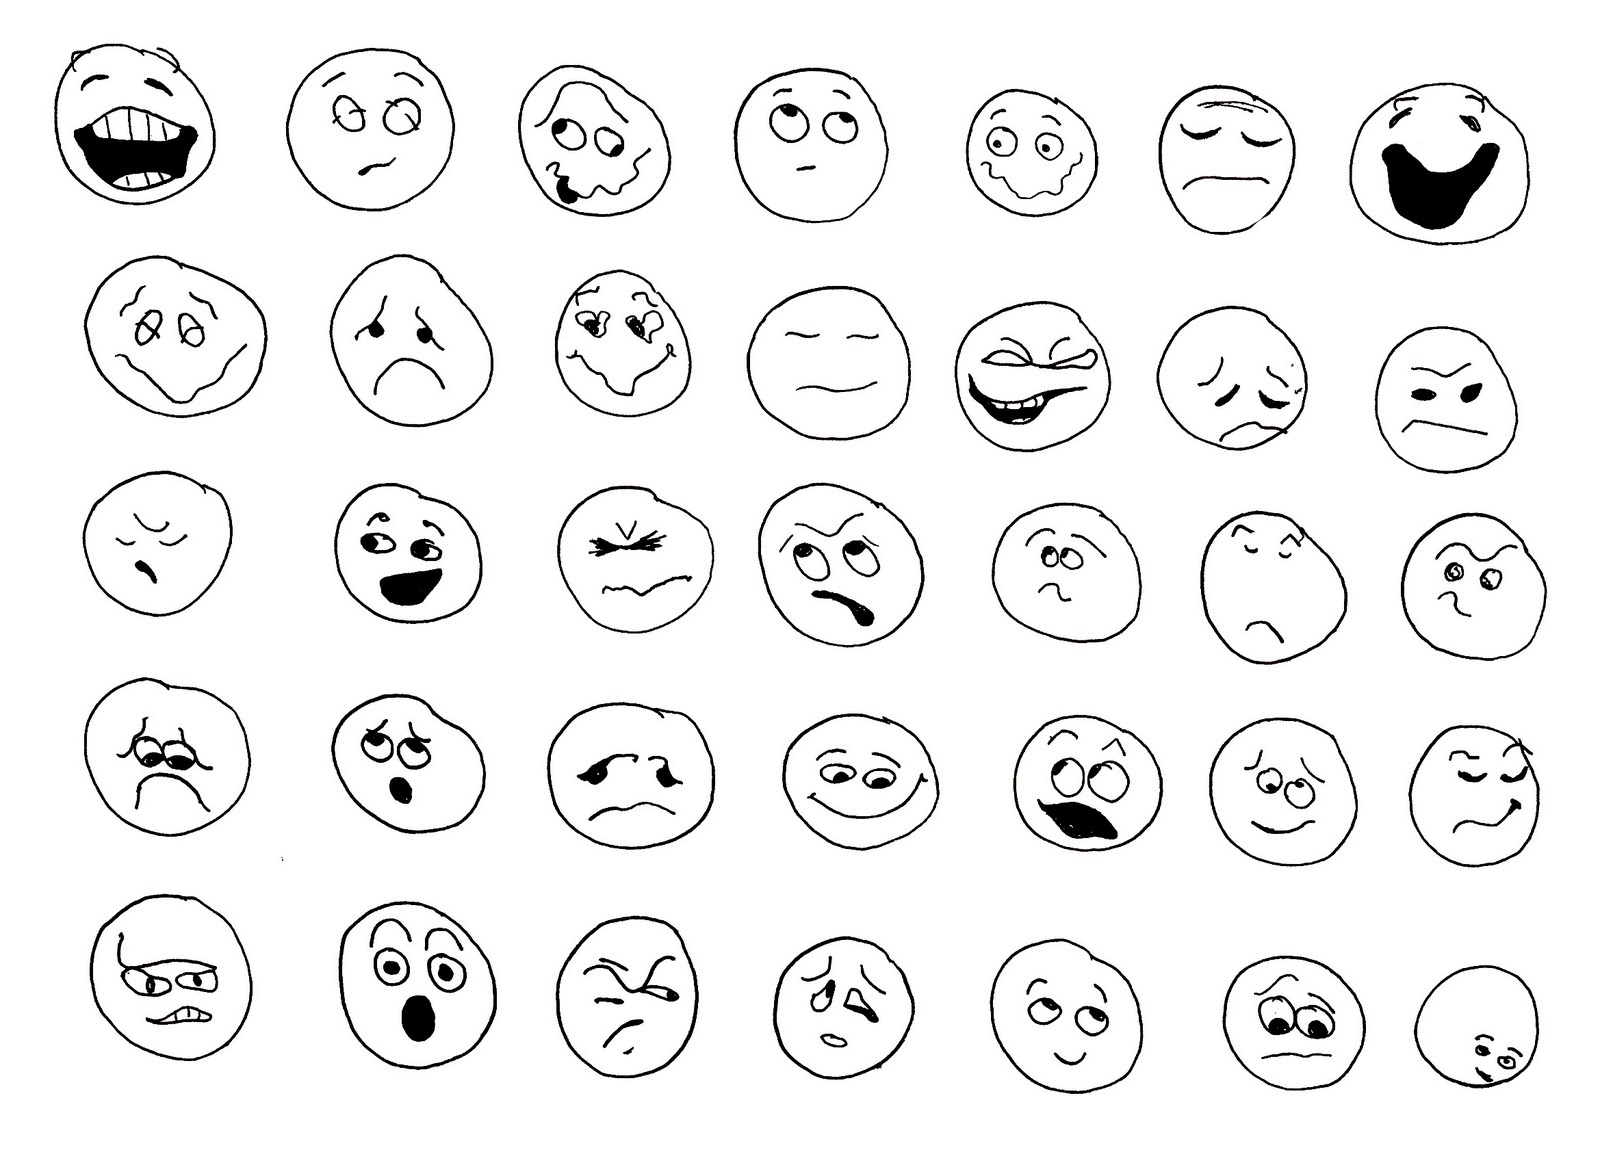 free printable emotions coloring pages - photo#27